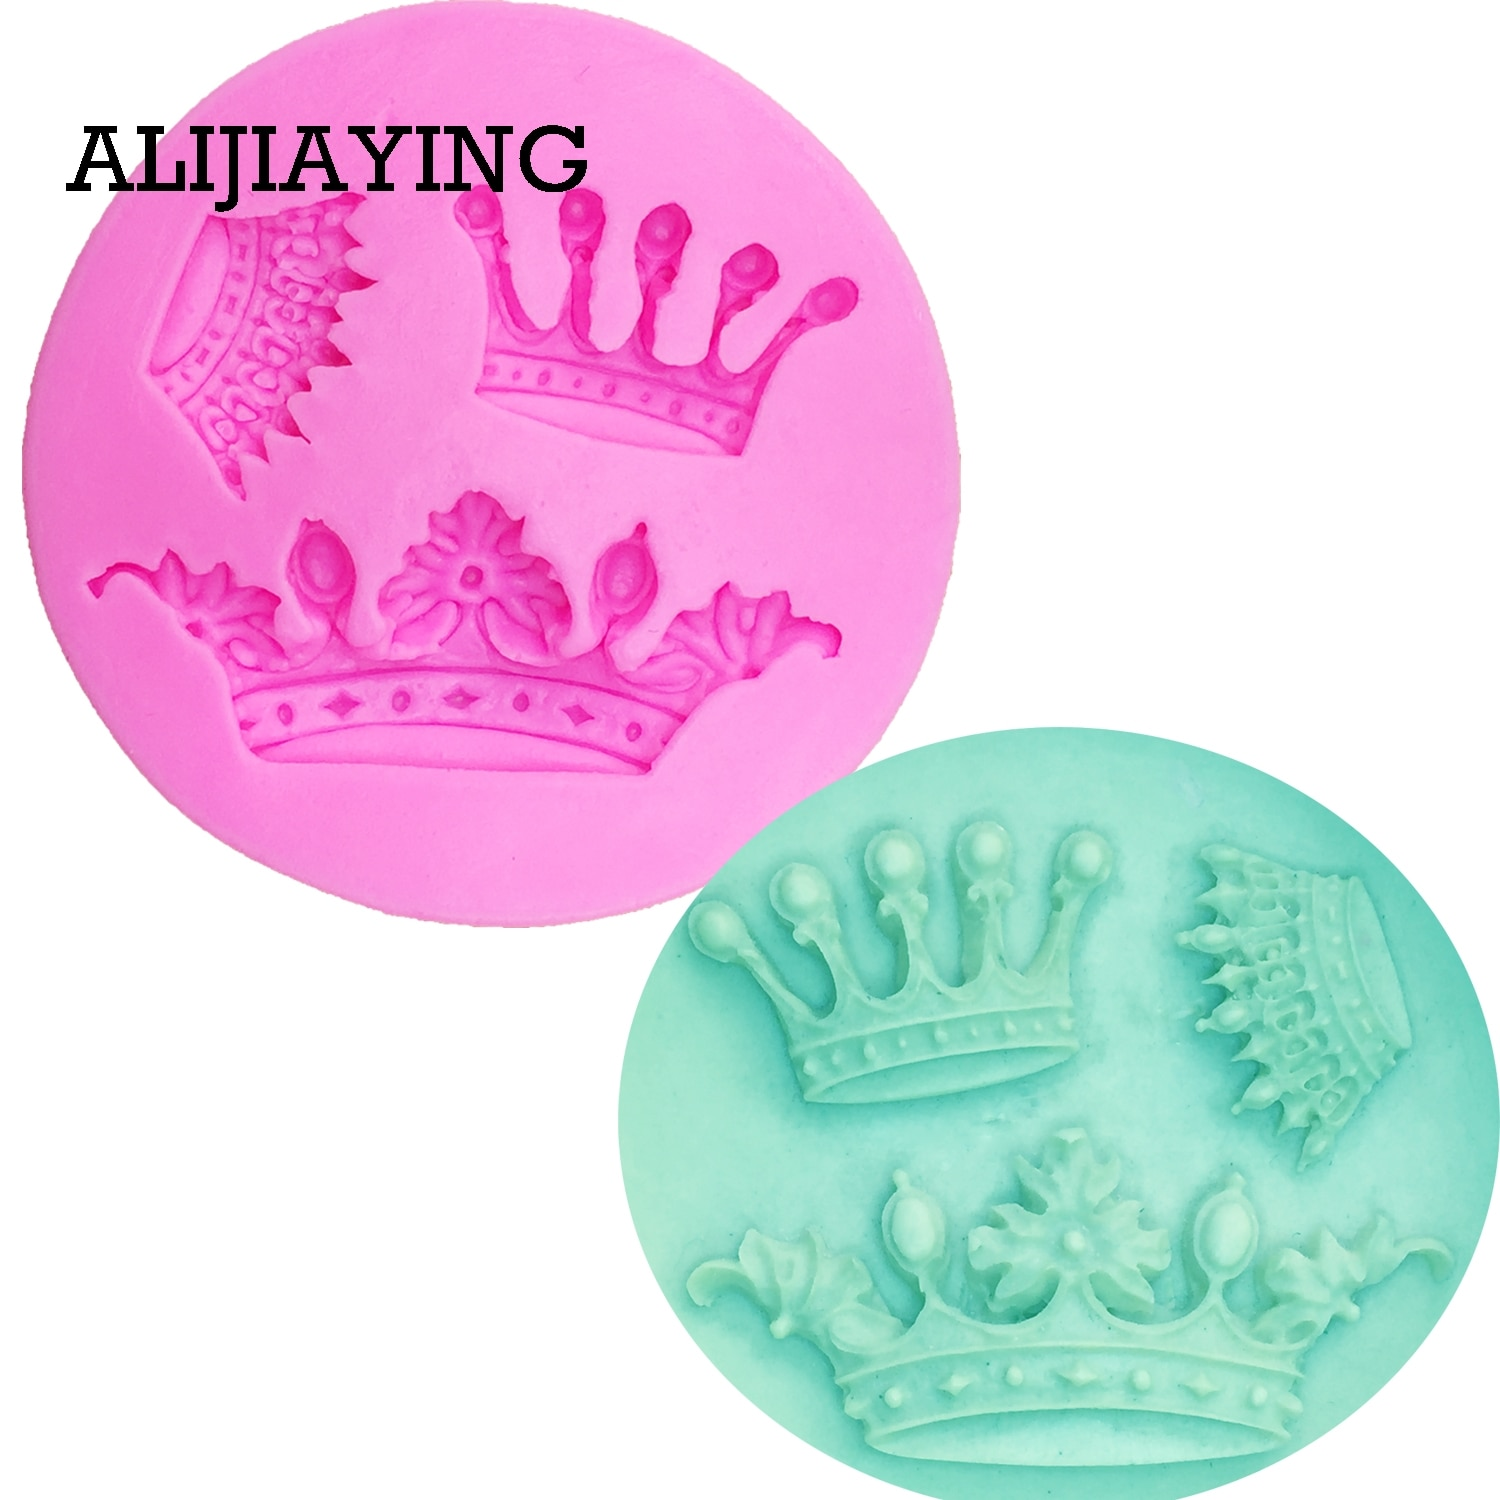 M0111 Crown Shape Silicone Mold,Cake Chocolate Kitchen Baking Mould, ,Dining Bar Fondant Cake Tools ,Cake Decorating hallowe shape silicone chocolate mold for cake decorating fondant mould baking tools resin form kitchen cake tools bakeware